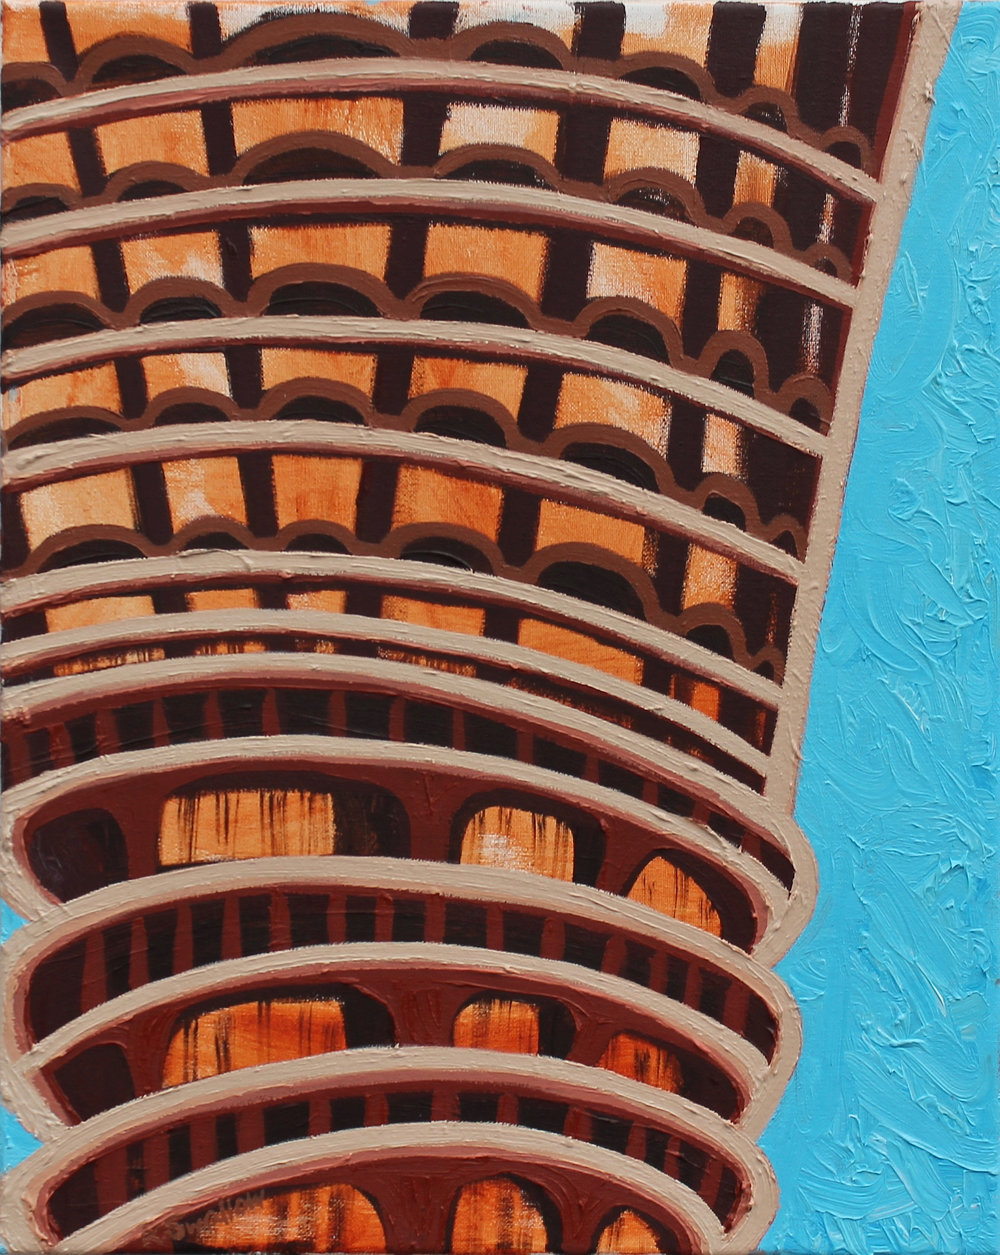 Marina Towers #2, oil on canvas, 20x16, 2017, AVAILABLE